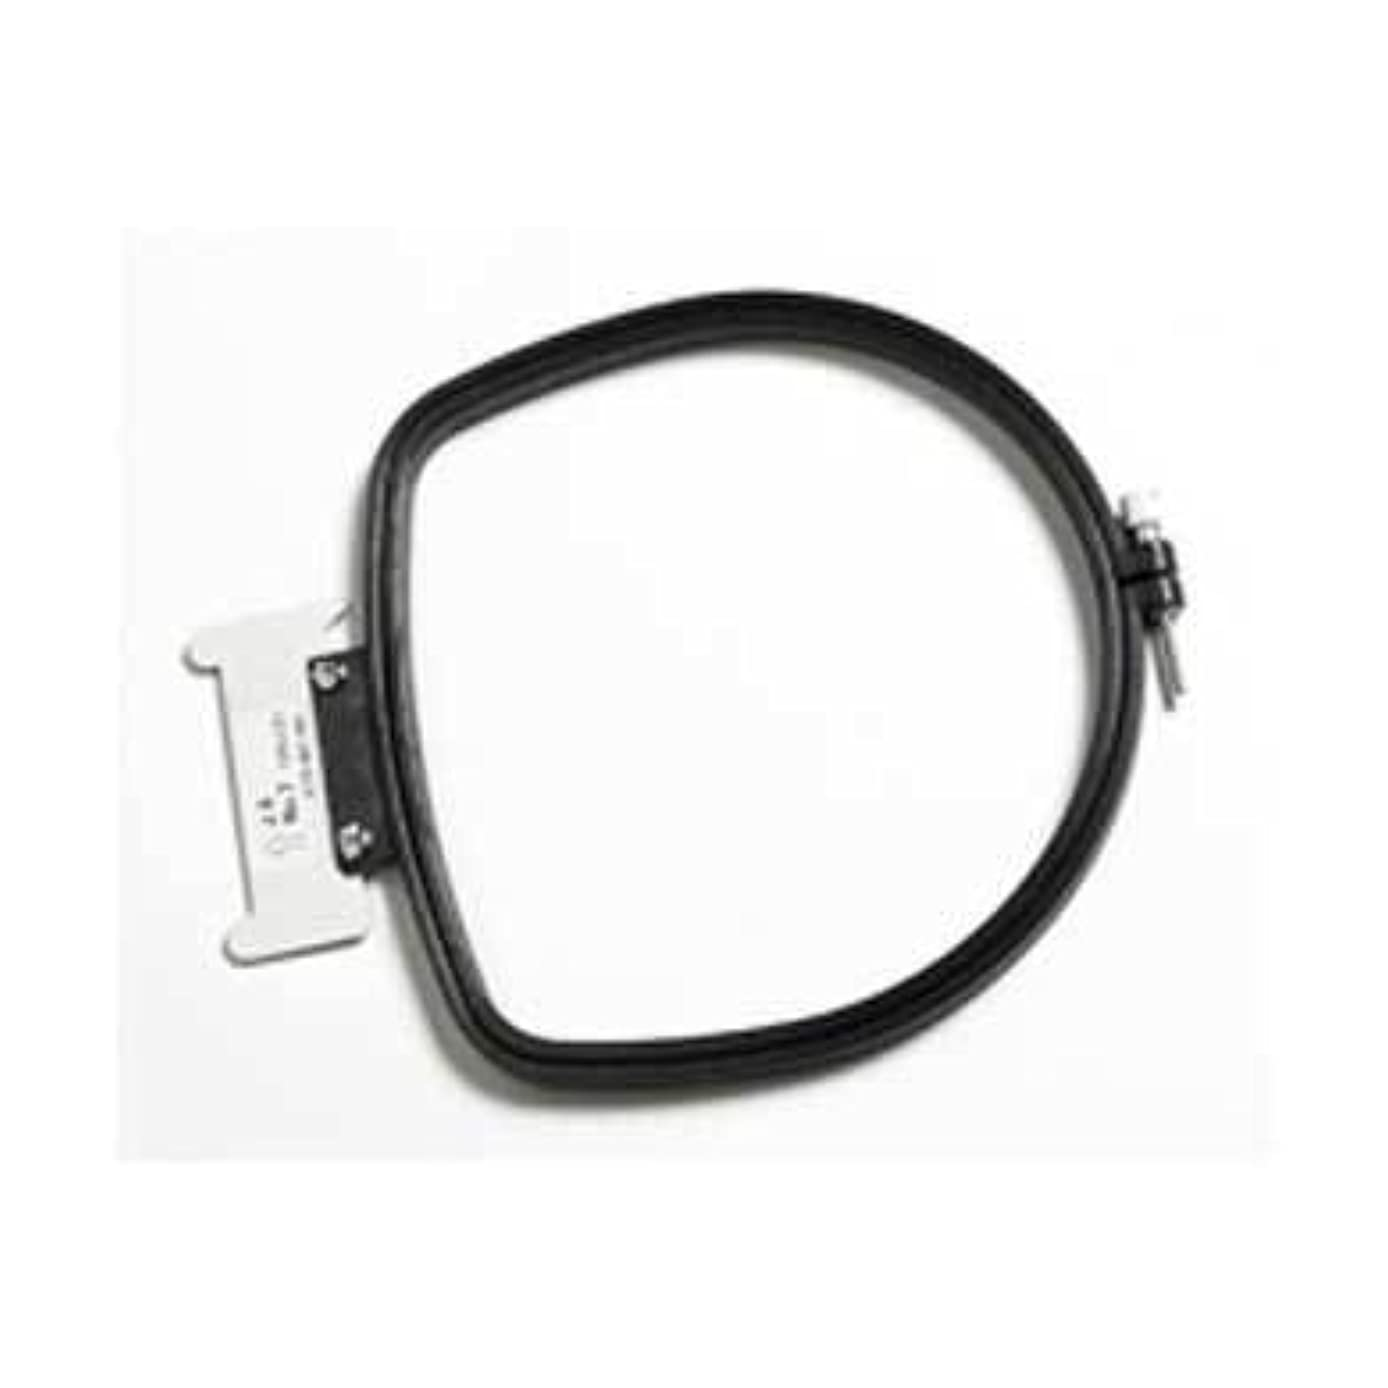 Janome MB-4 and MB-7 No. 7 Lettering Hoop J8